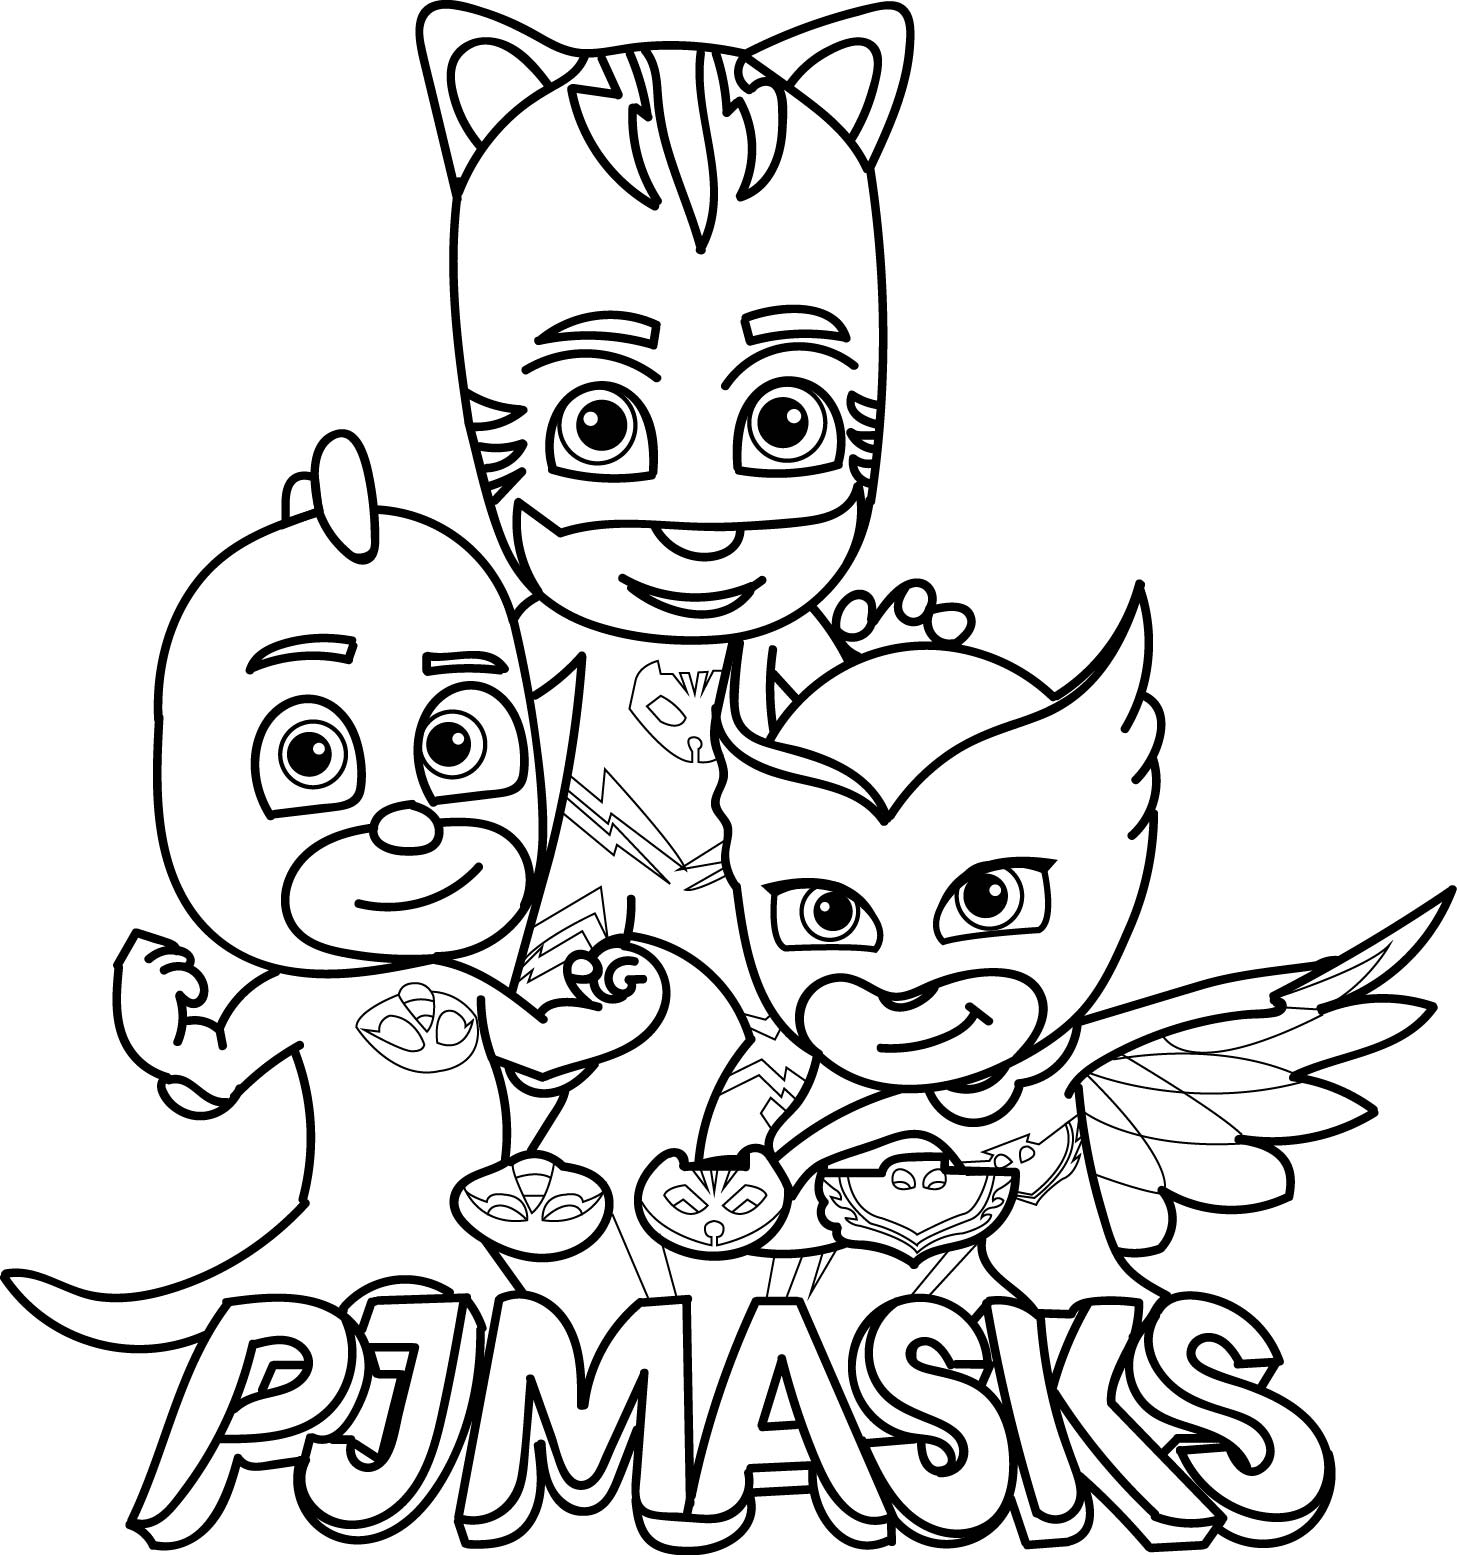 kid outline coloring page shopkins coloring pages best coloring pages for kids outline page kid coloring